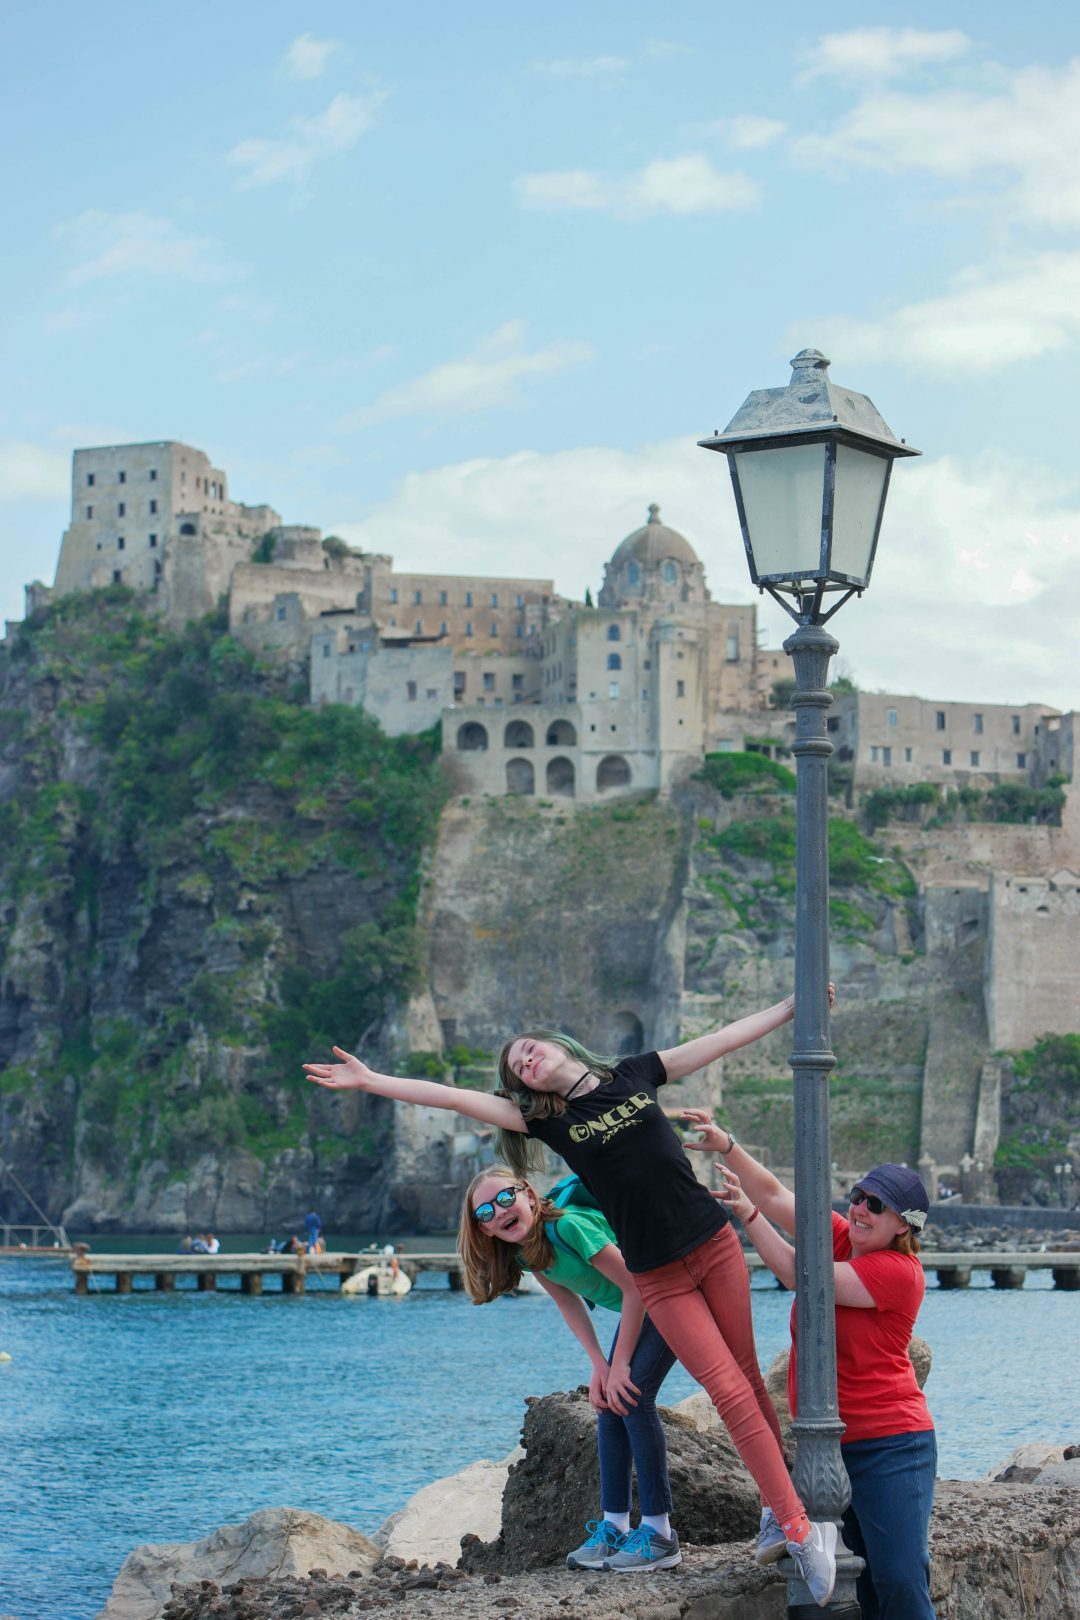 Travel Bucket List: A Day on the Island of Ischia Italy with family